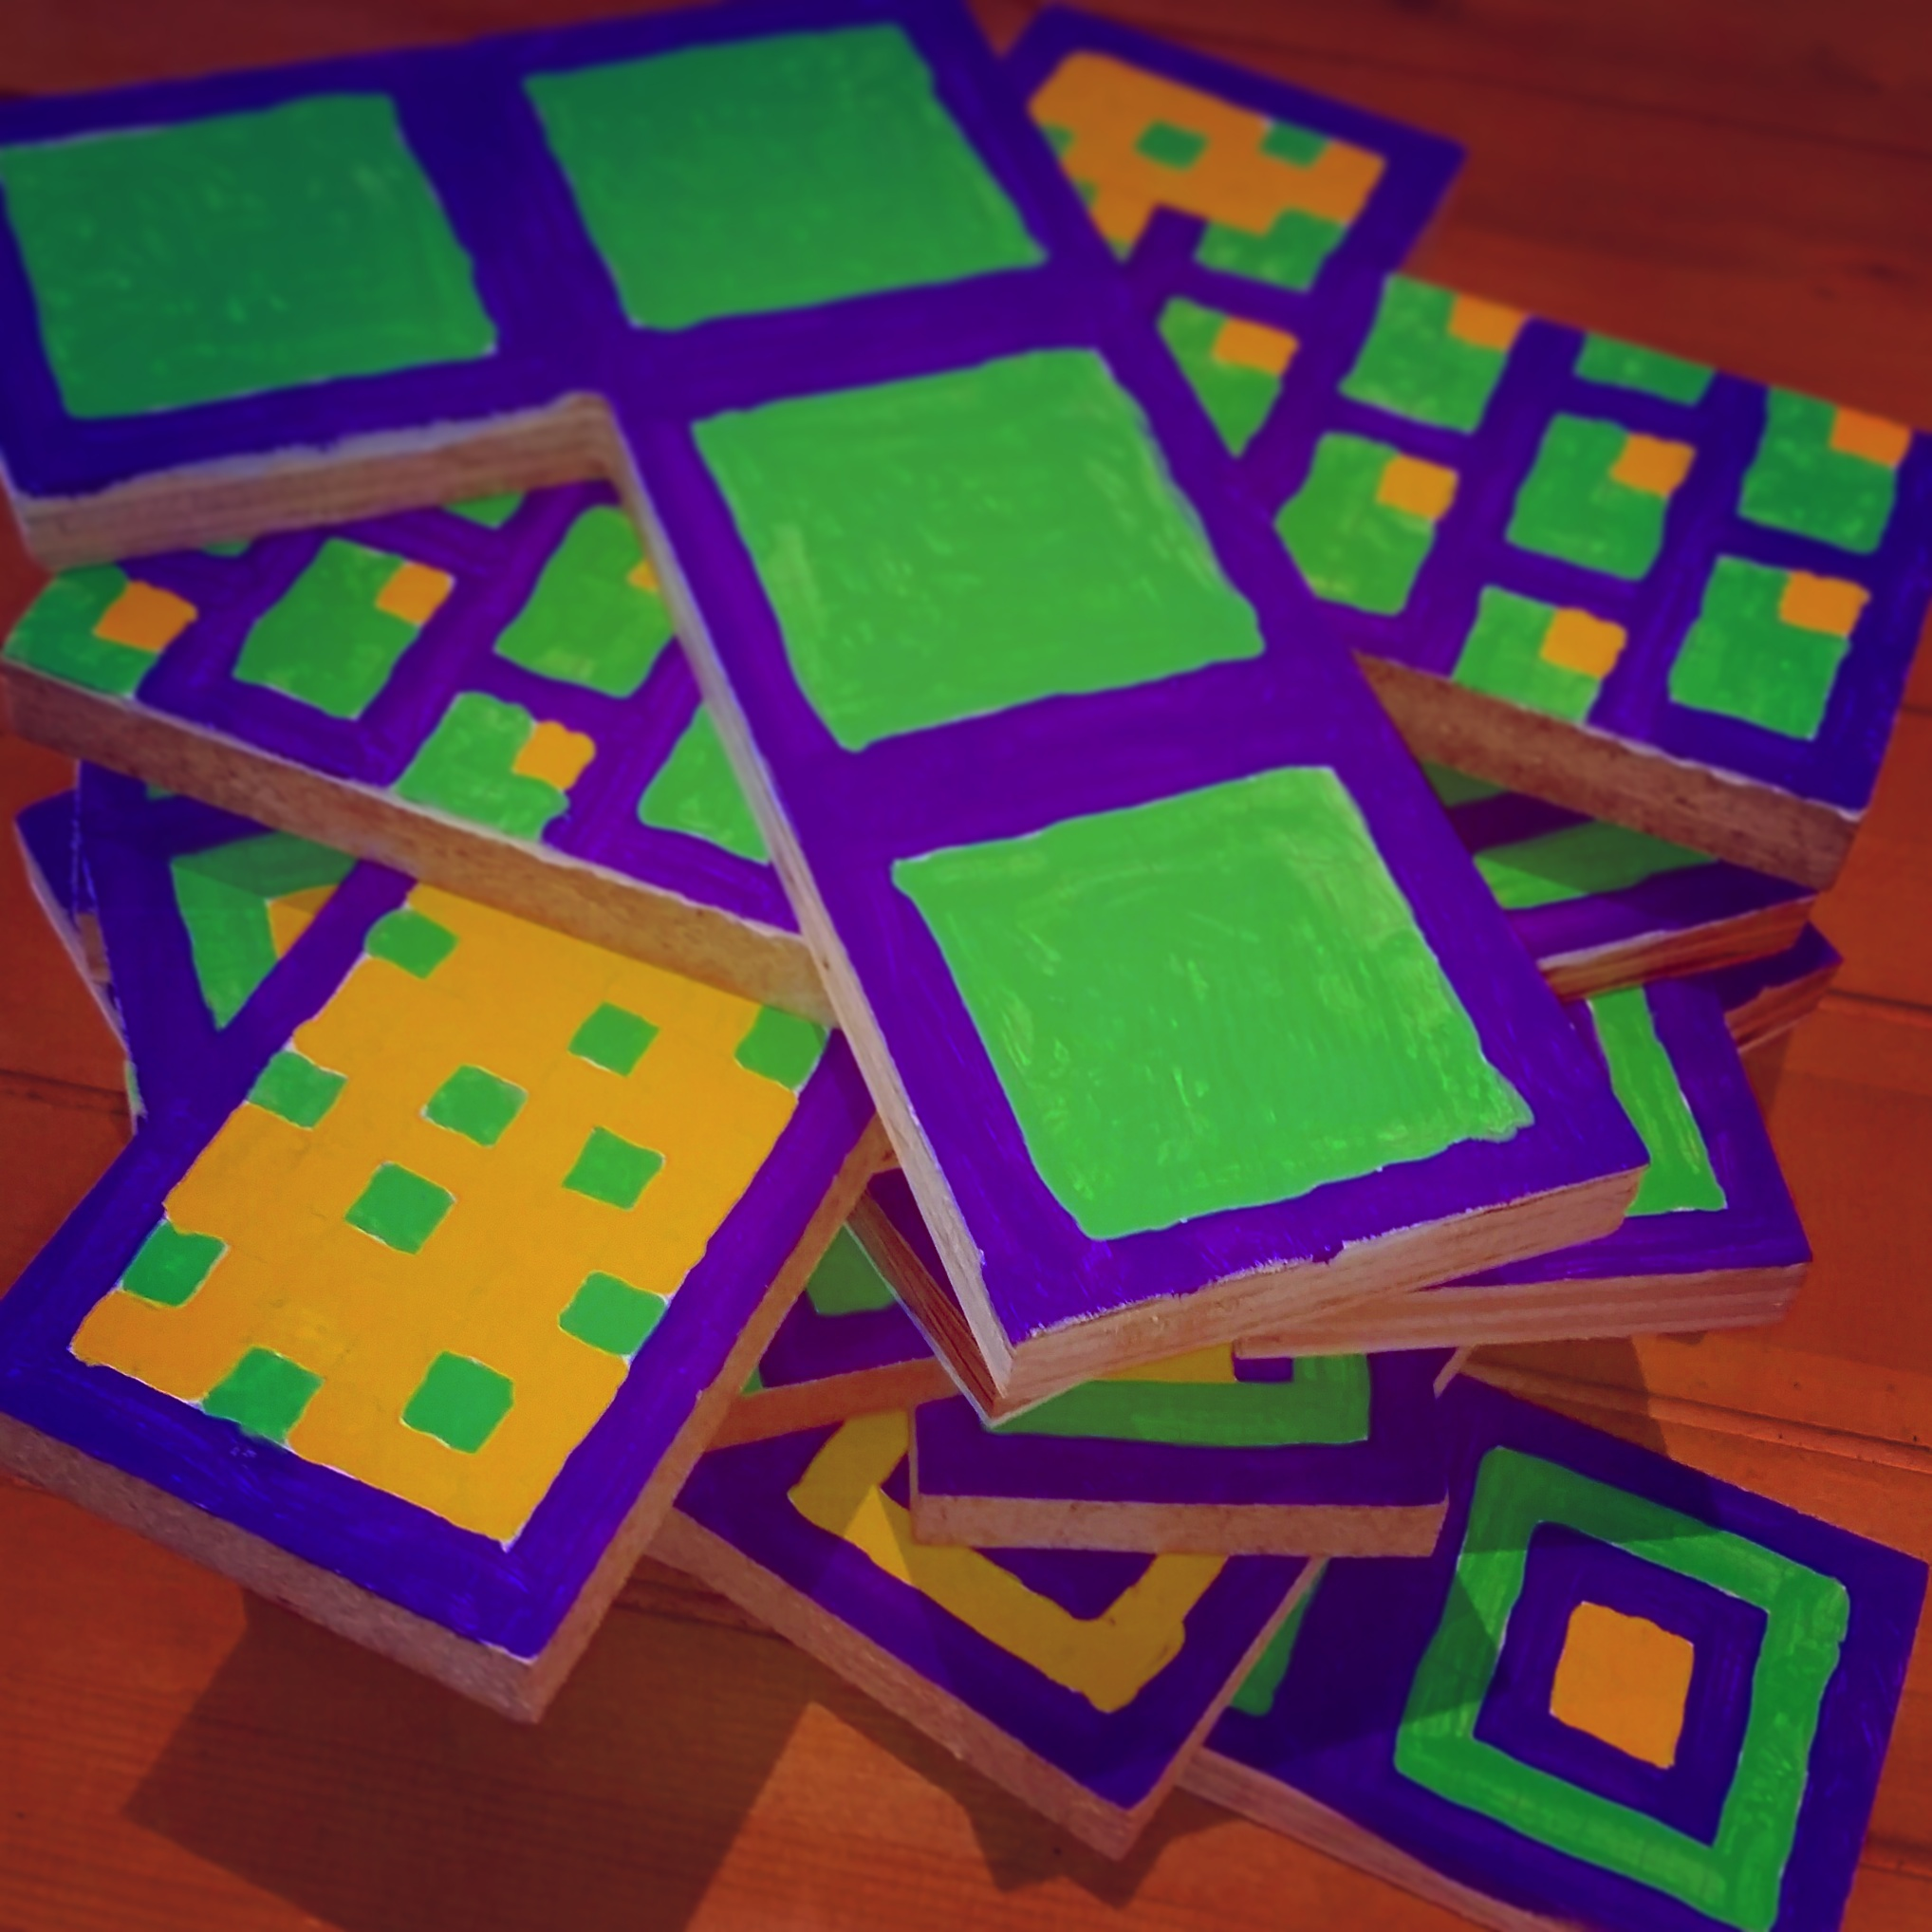 A game that combines Tetris, Jenga and Twine